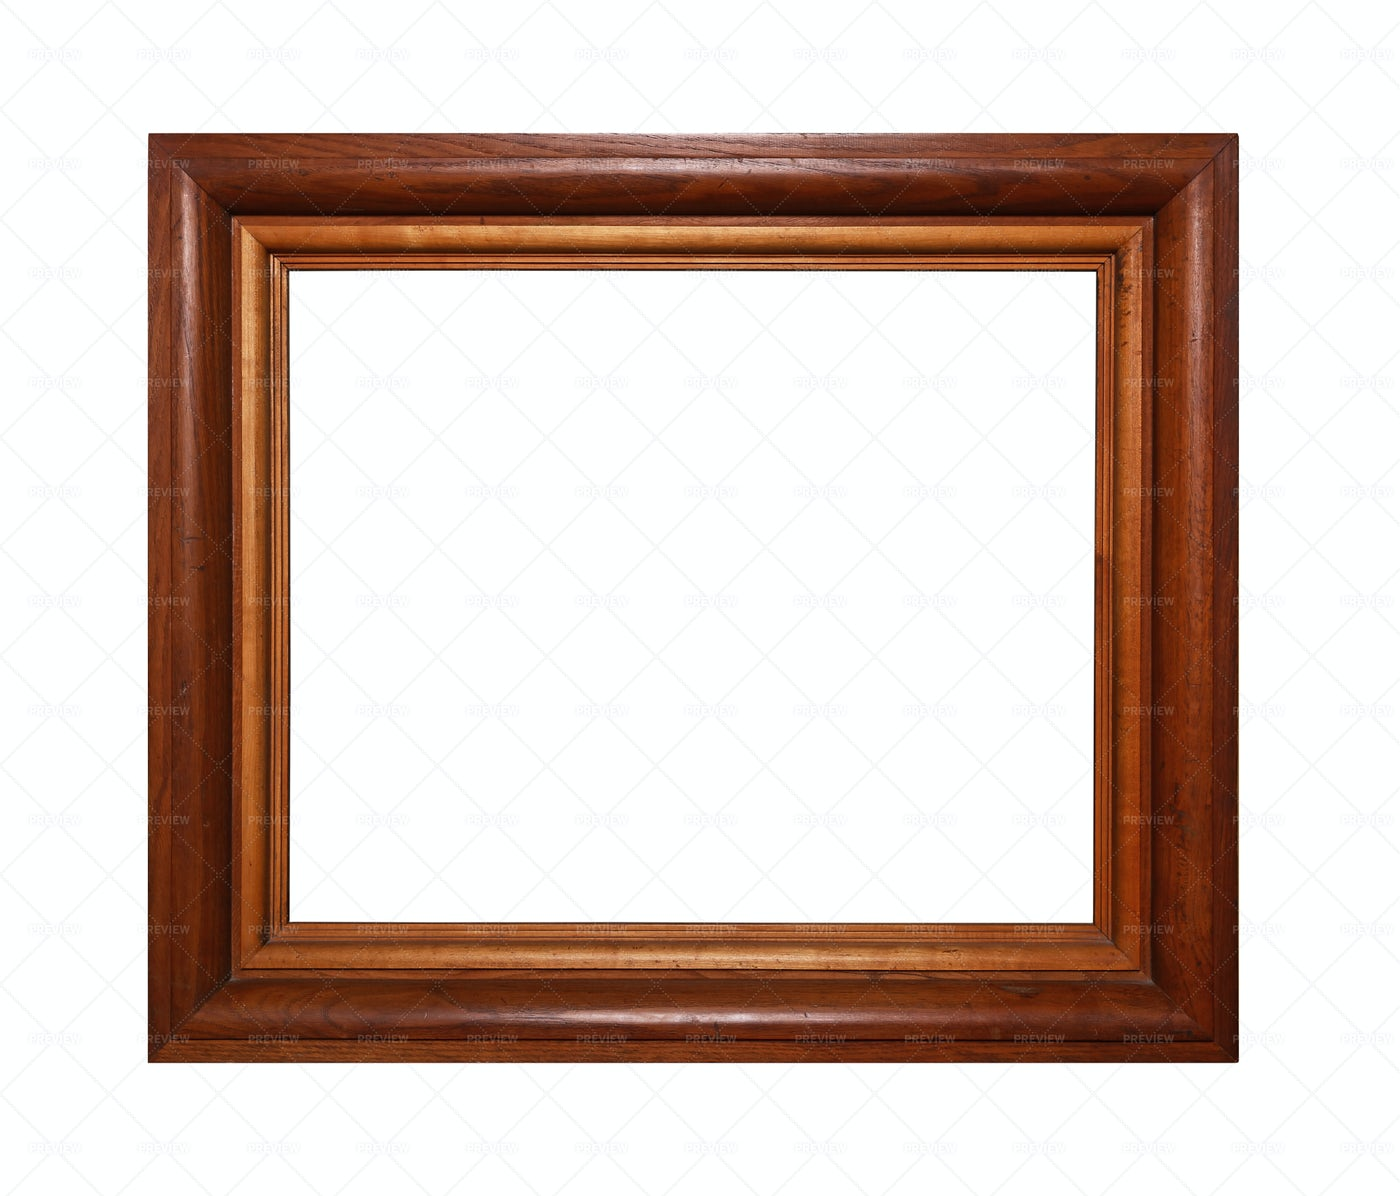 Wooden Picture Frame: Stock Photos